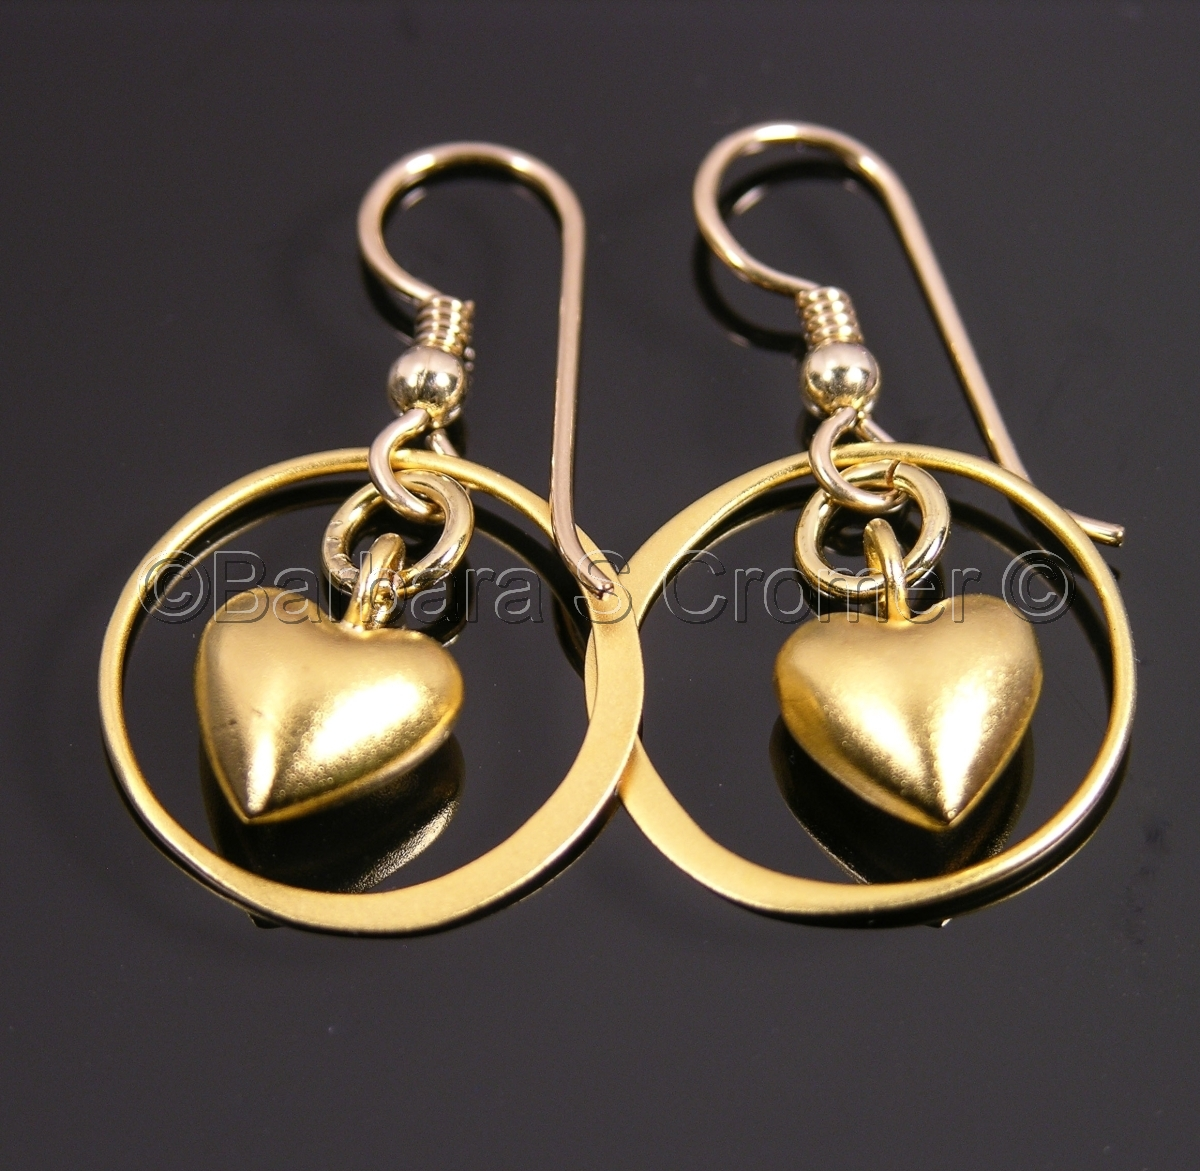 Hearts, golden, vermeil encircled, handmade vermeil, gold filled, french ear wires, 1.25 inches overall (large view)